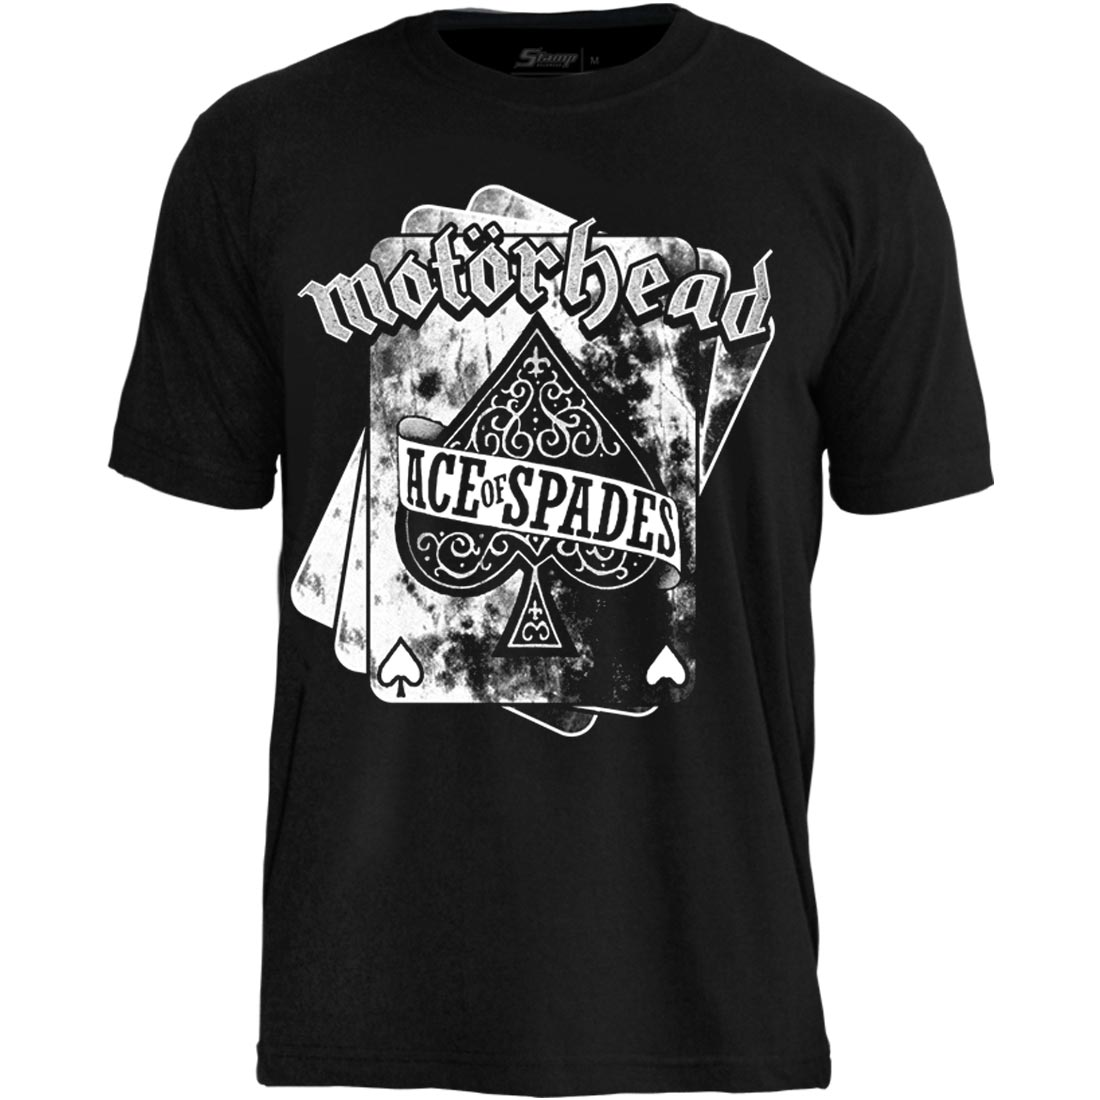 Camiseta Motorhead Ace Cards